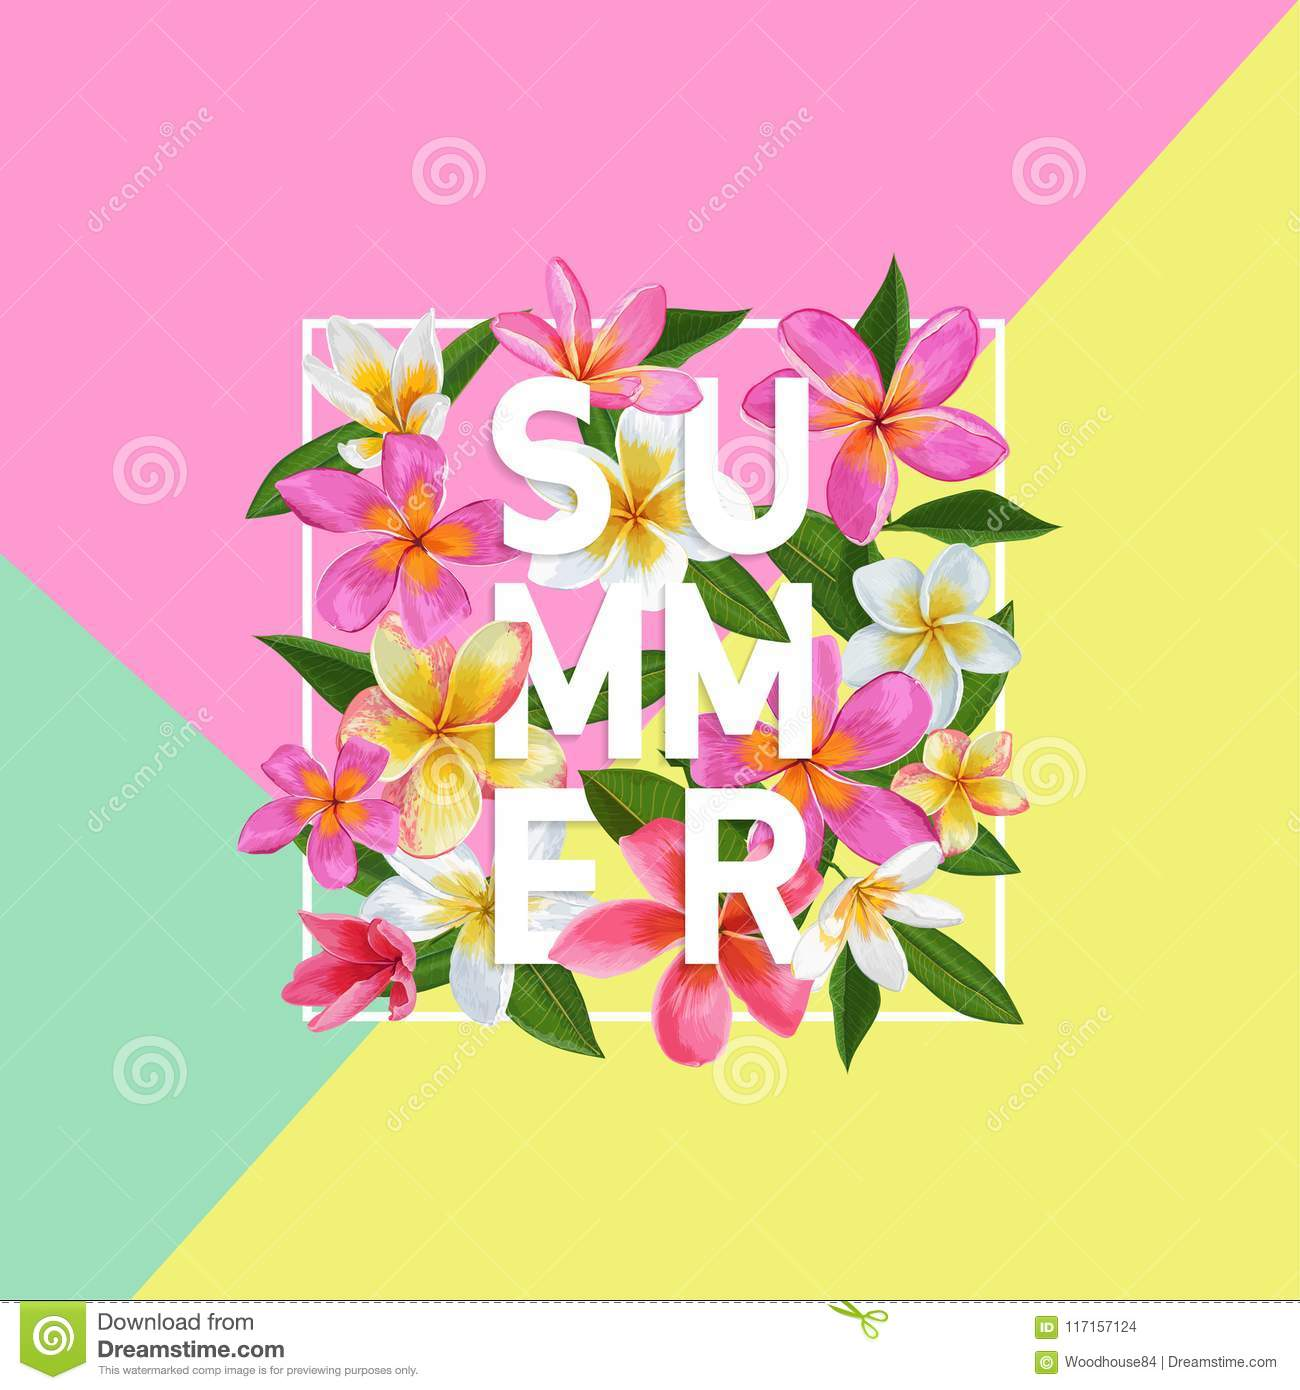 summertime floral poster tropical pink plumeria flowers design for